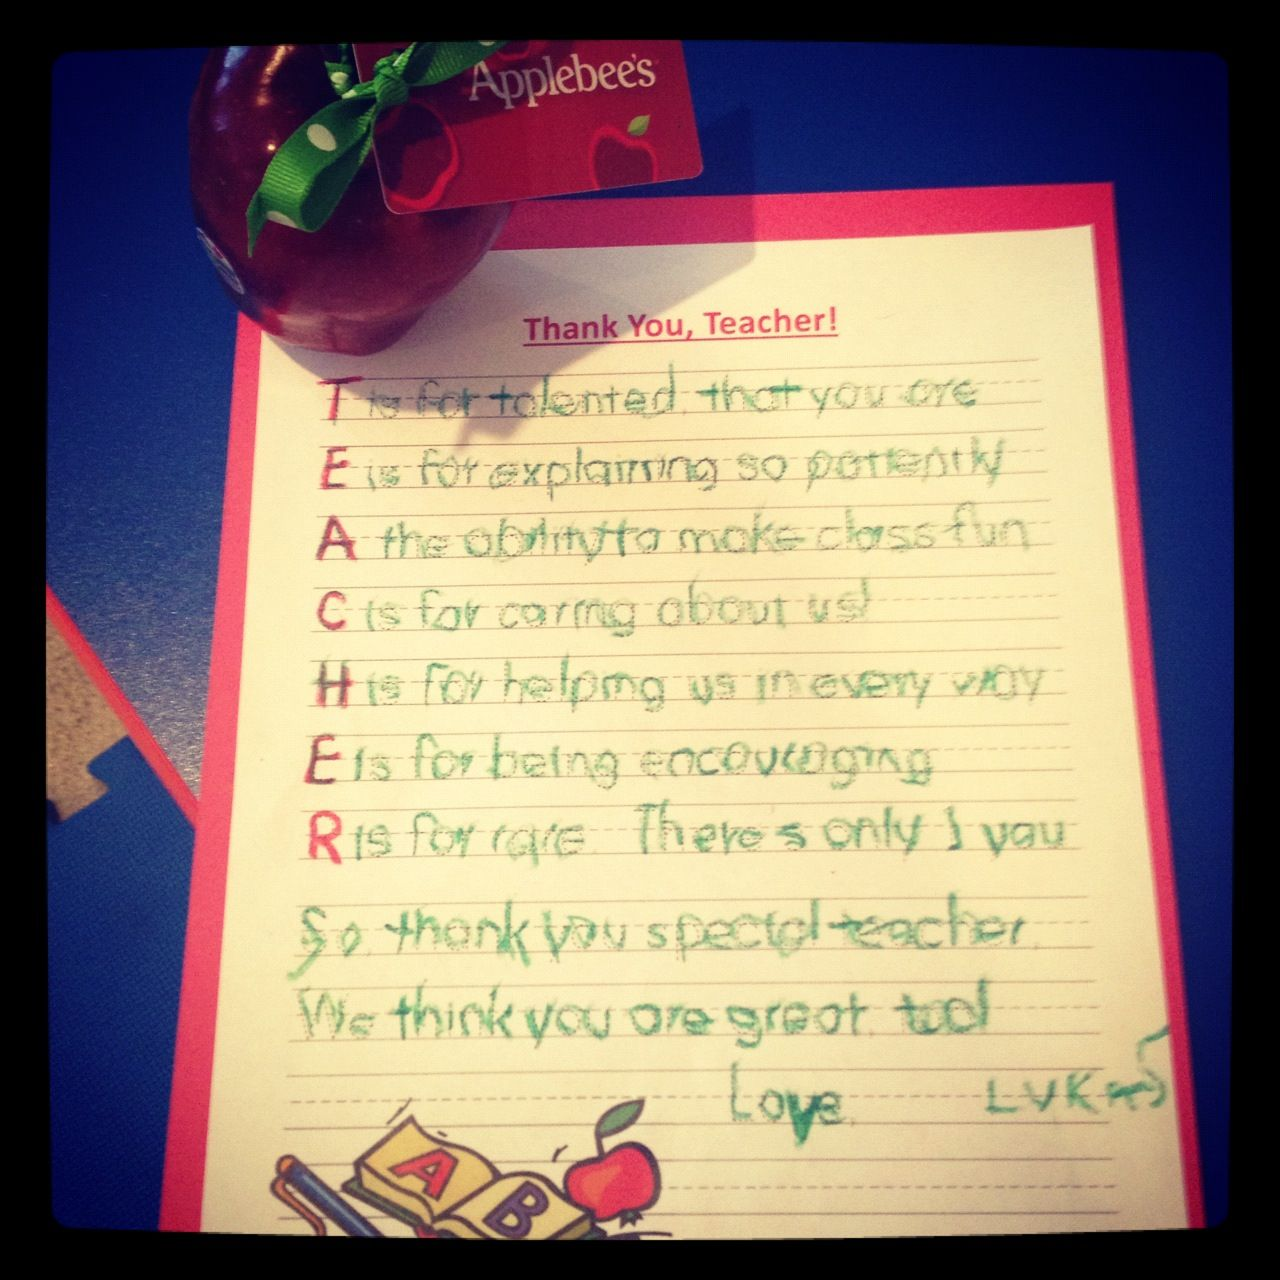 teacher appreciation day cute letter to teacher with an apple applebees gift card